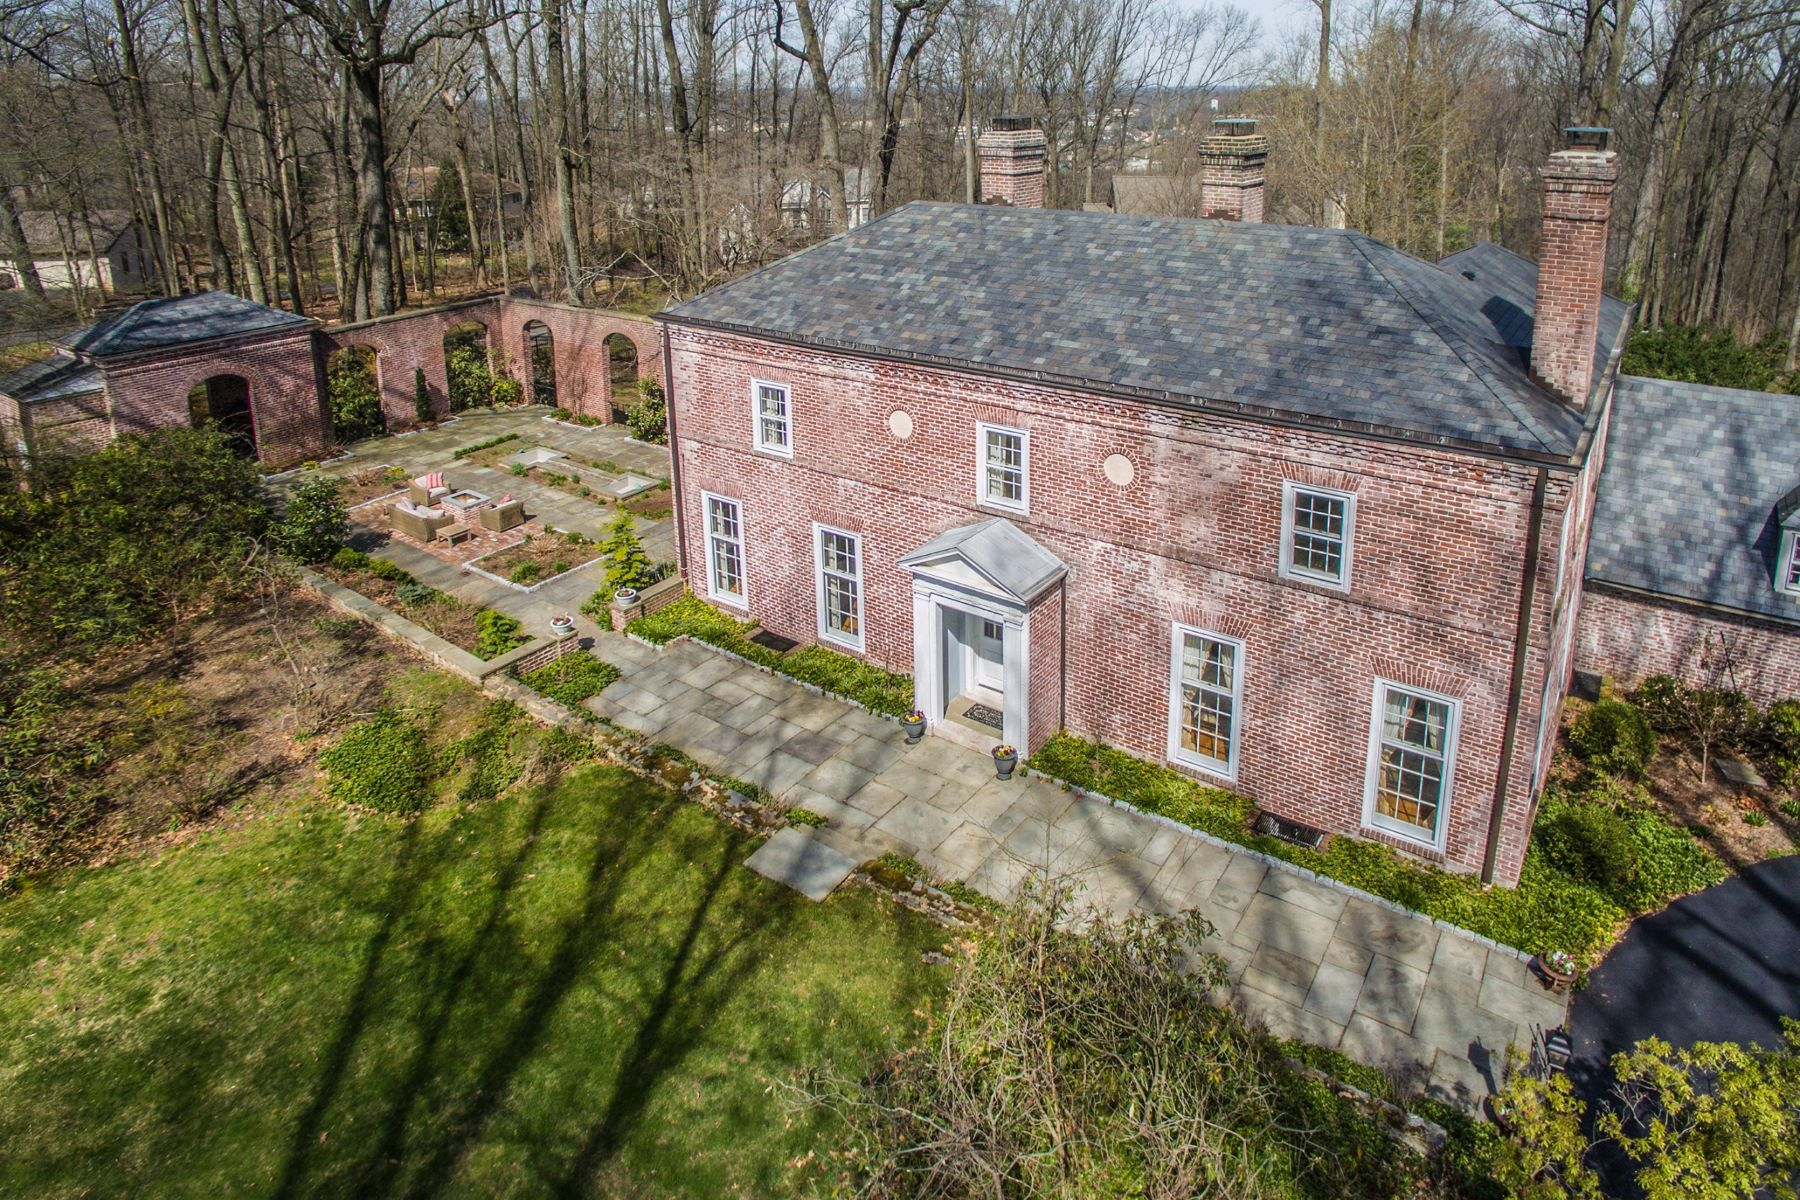 Single Family Home for Sale at Exceptional Colonial 440 DRESHERTOWN RD Fort Washington, Pennsylvania, 19034 United States